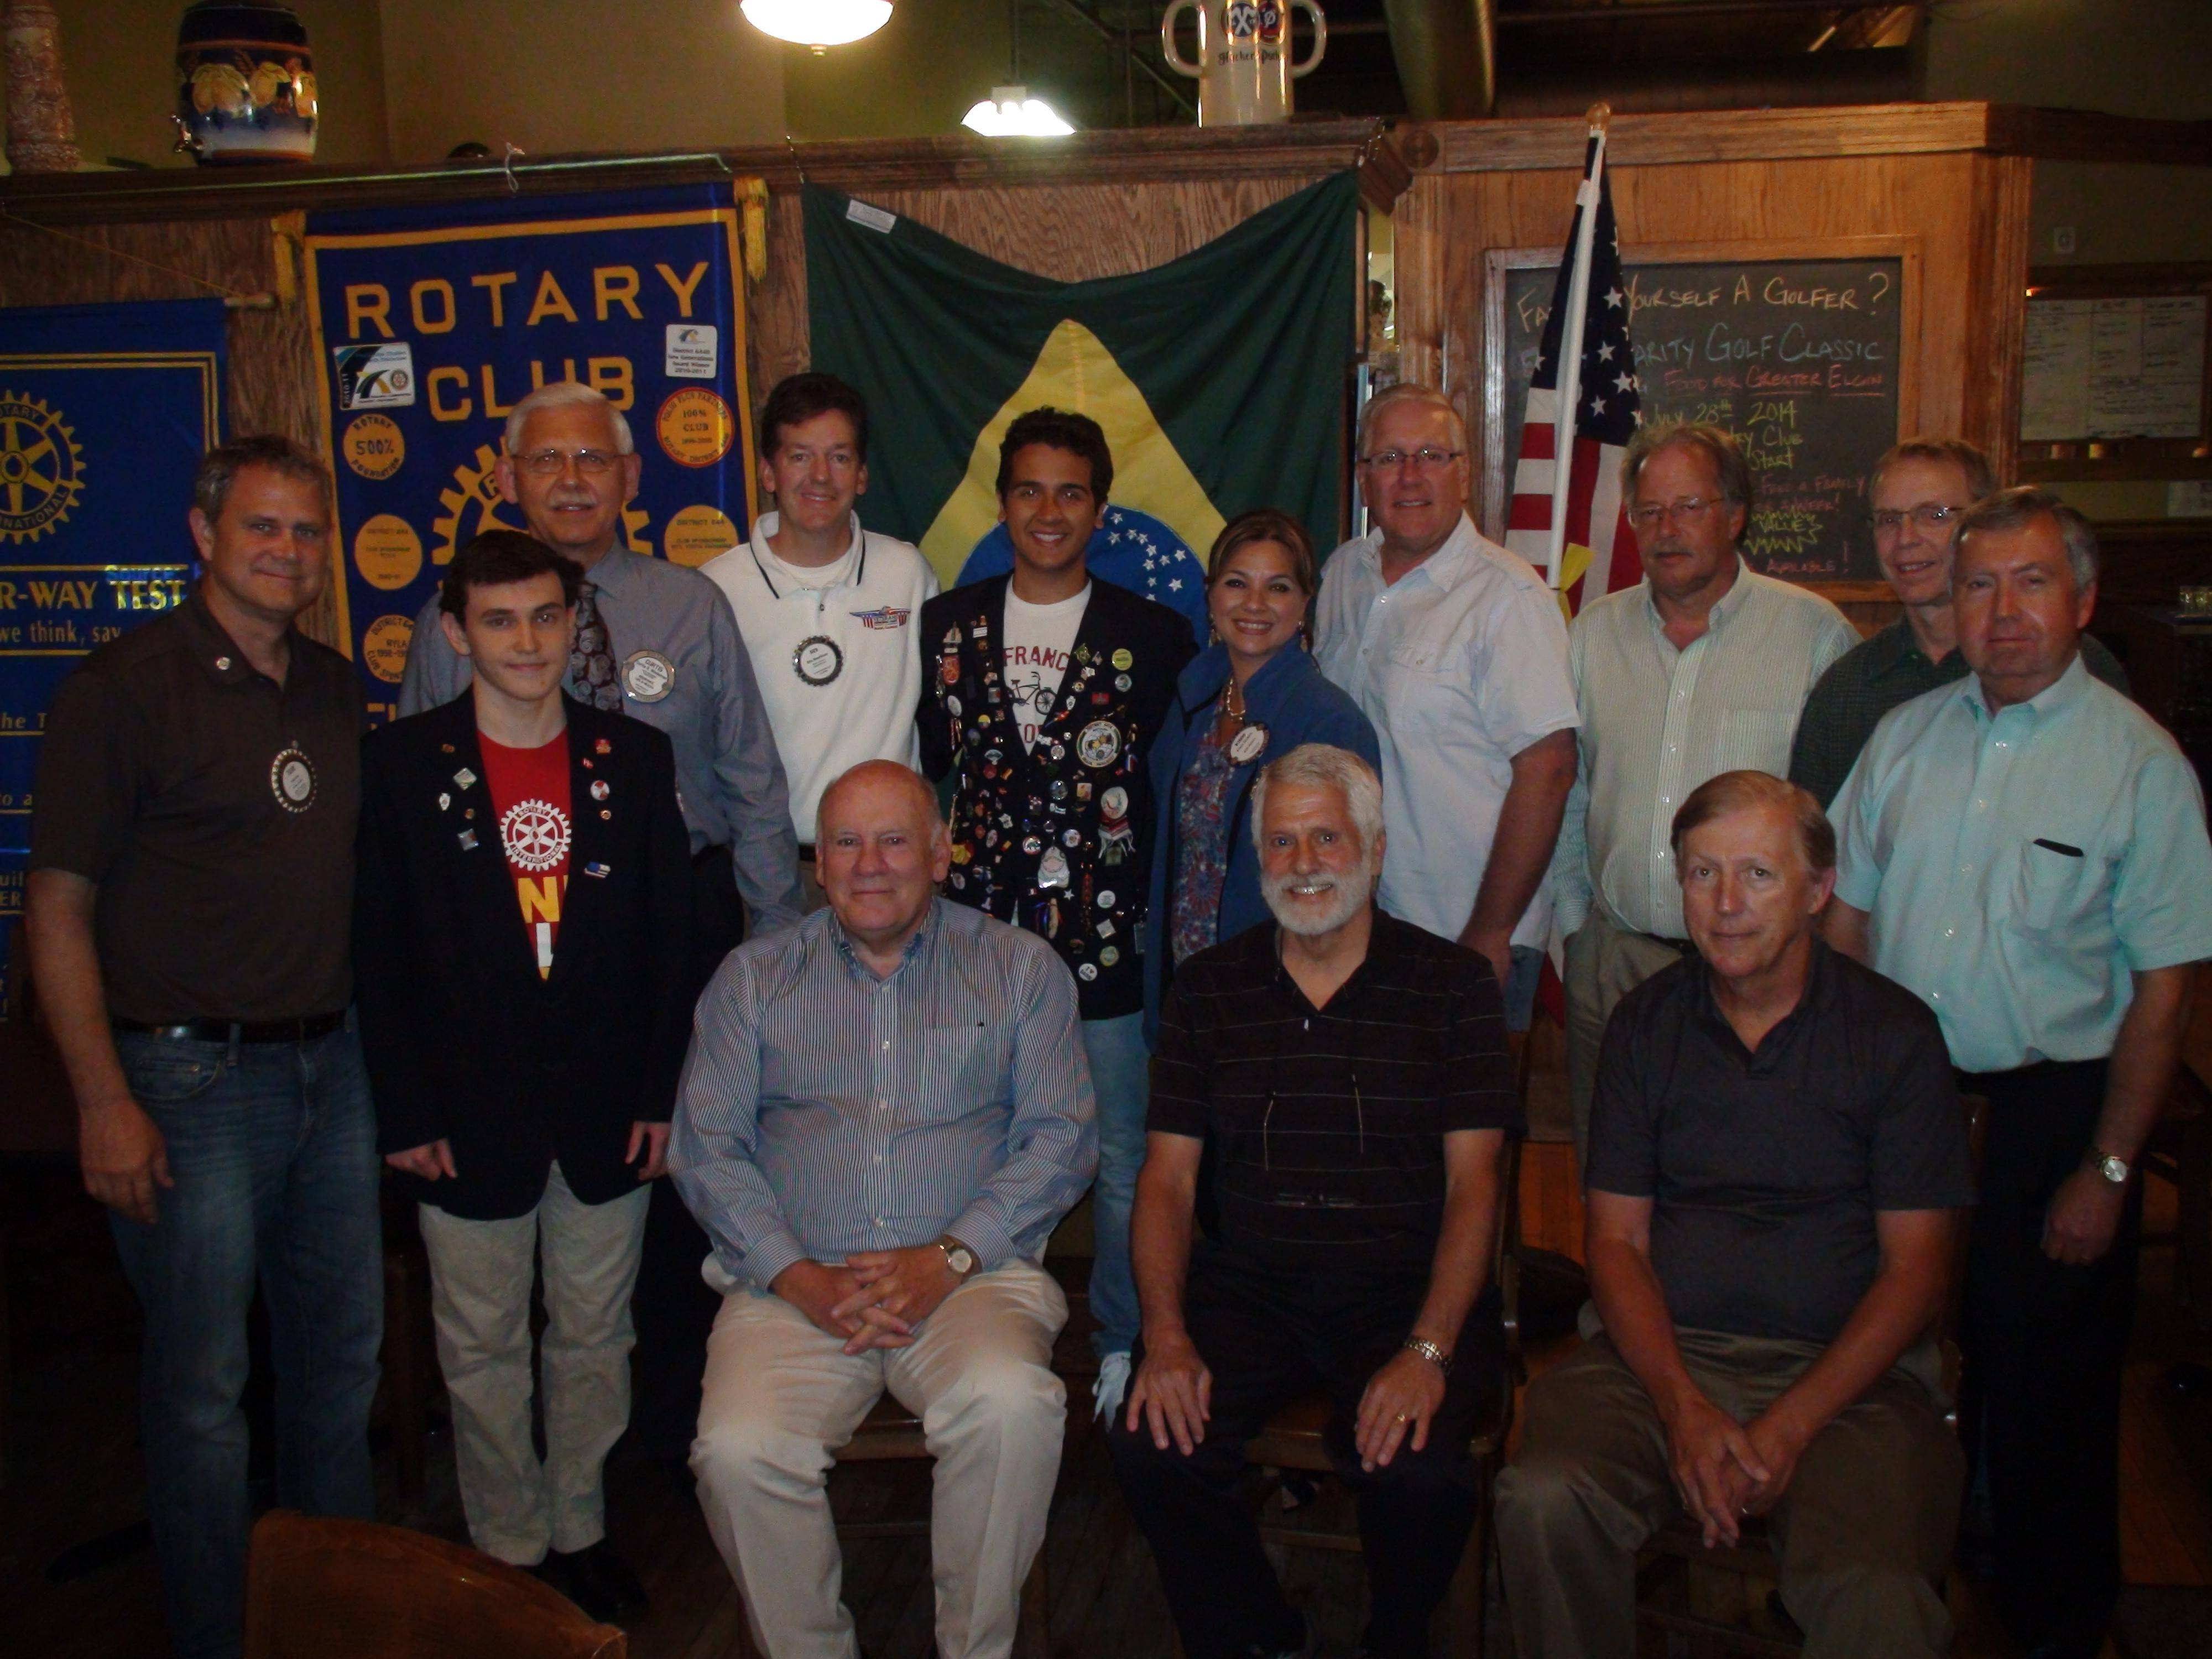 The Elgin Breakfast Rotary Club recently honored their Rotary Exchange Student from Brazil, Rodolfo Quaggio, center, back row, with a Paul Harris Fellow. Pictured are: front row, from left, Dave Dorgan, Al Kirkland, Pat Crawford; and back row, Alan Kirk, Chad Billings, Curtis Wiedeman, Ben Henrickon, Kimm Dodaro, Dan Helsdon, Sam Boyter, Jim Brandes, Dwain Tataryn.